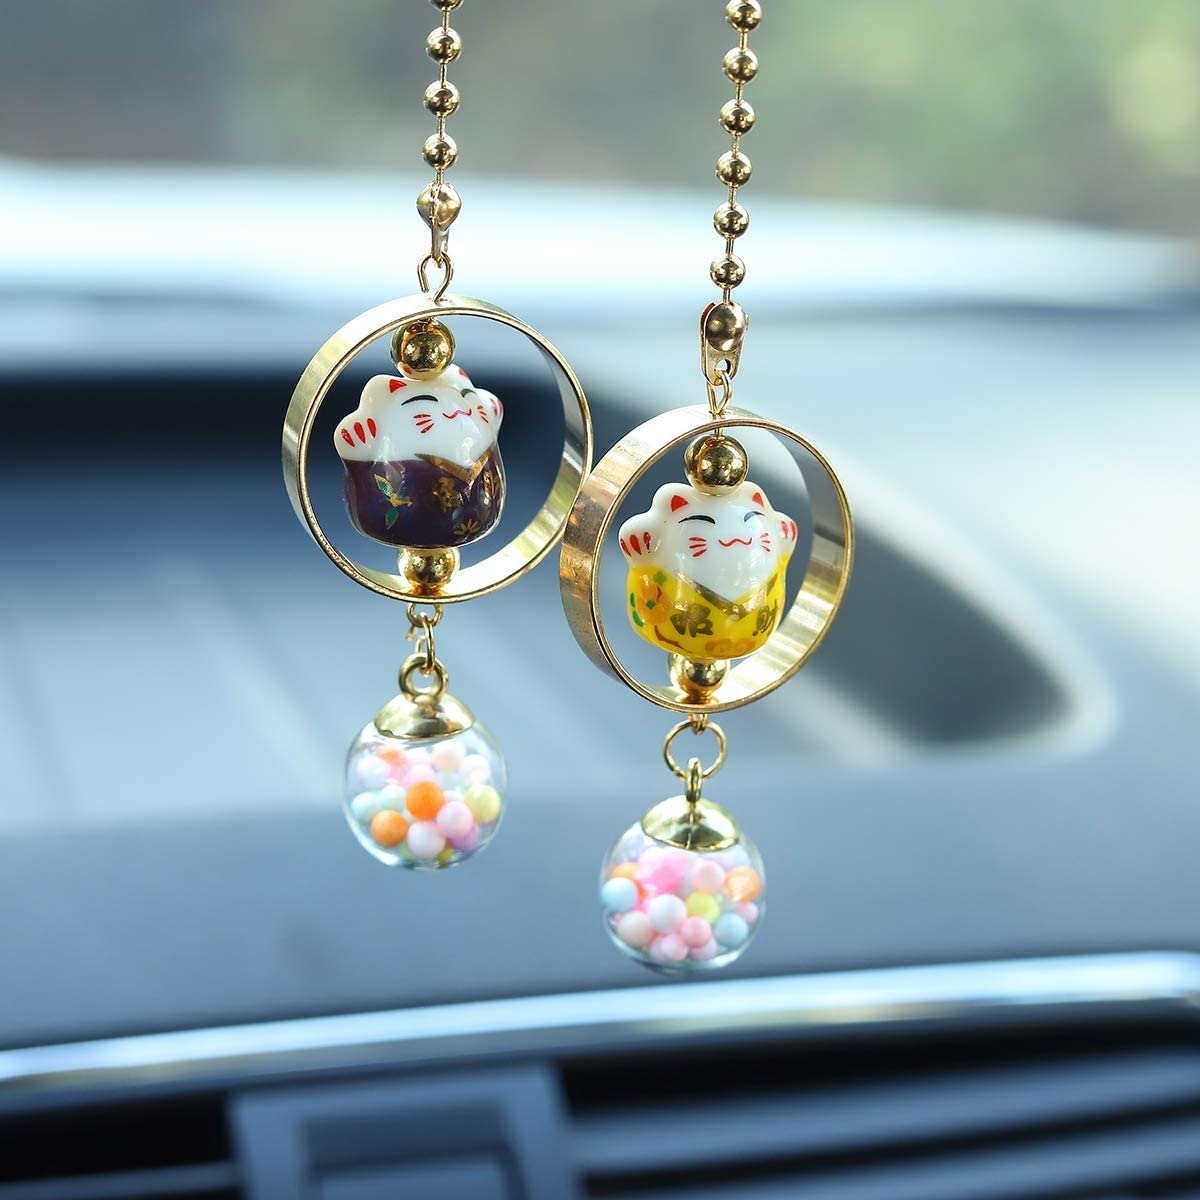 Blue /& Pink EYEZU Bling Car Pendant Lucky Cat Car Charms for Rear View Mirror Chinese Ceramic Car Charm Ornaments Cute Cat Car or Home Decorations Car Interior Accessories